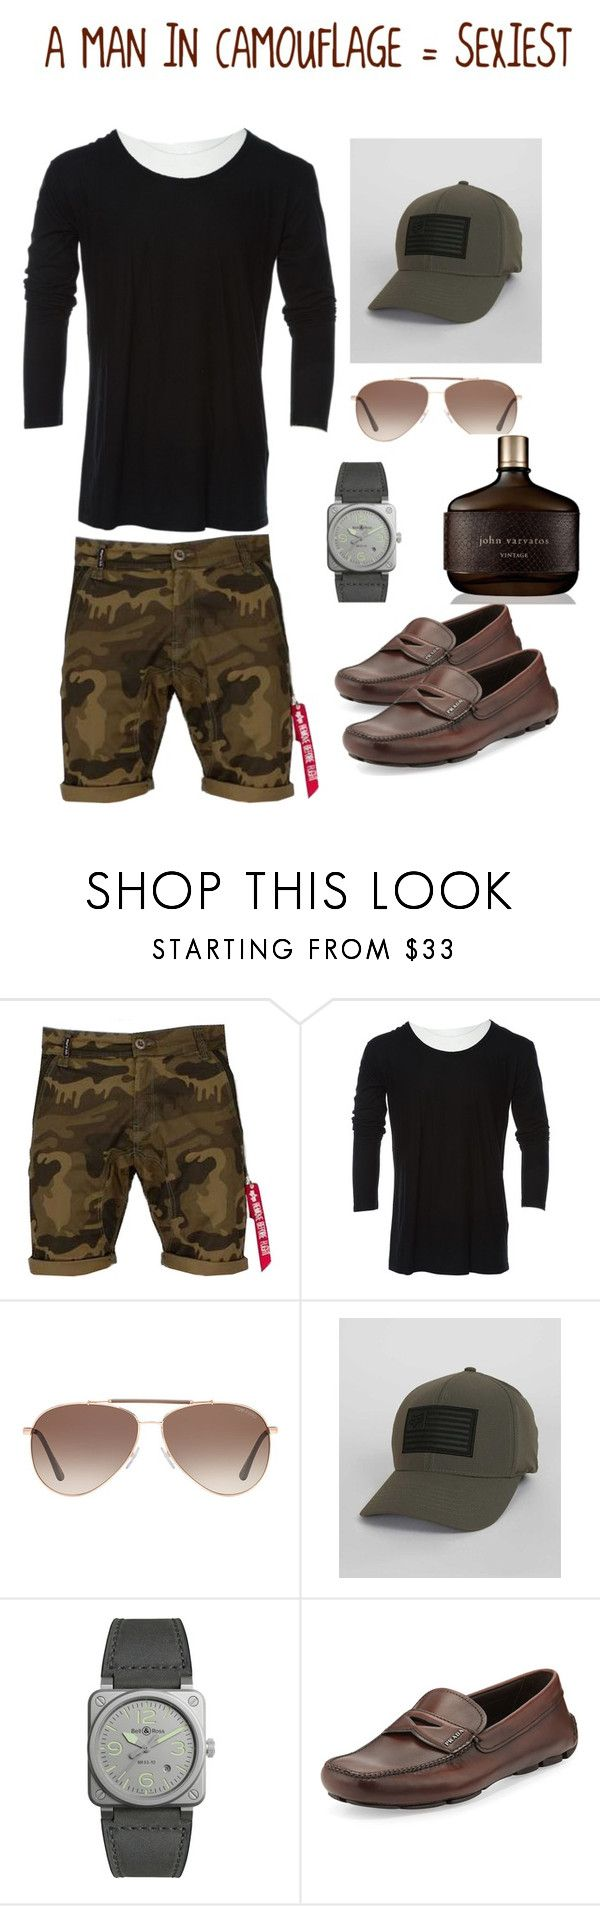 """(::) #13"" by bond-07 ❤ liked on Polyvore featuring Alpha Industries, Balmain, Tom Ford, Fox, Bell & Ross, Prada, John Varvatos, men's fashion and menswear"